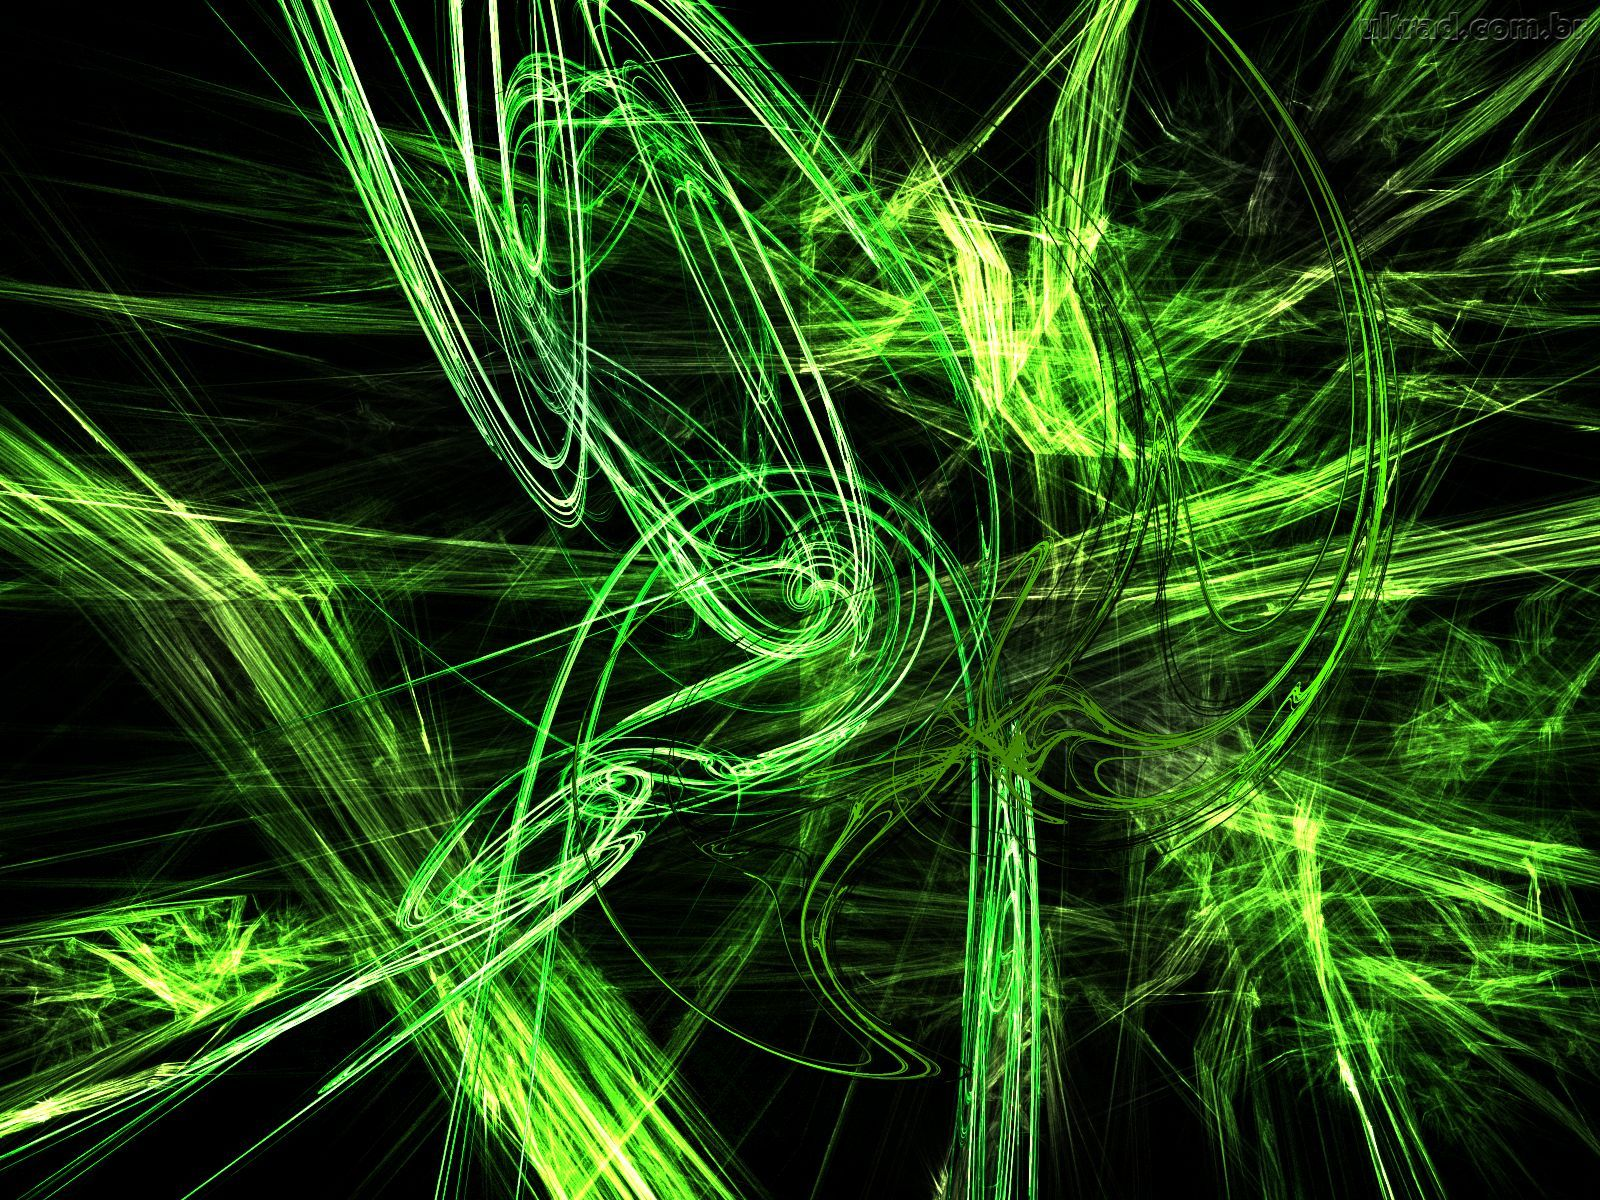 39 39 wallpapers 39 39 imagenes abstract hd 3d wallpapershd - Imagens em hd de animes ...